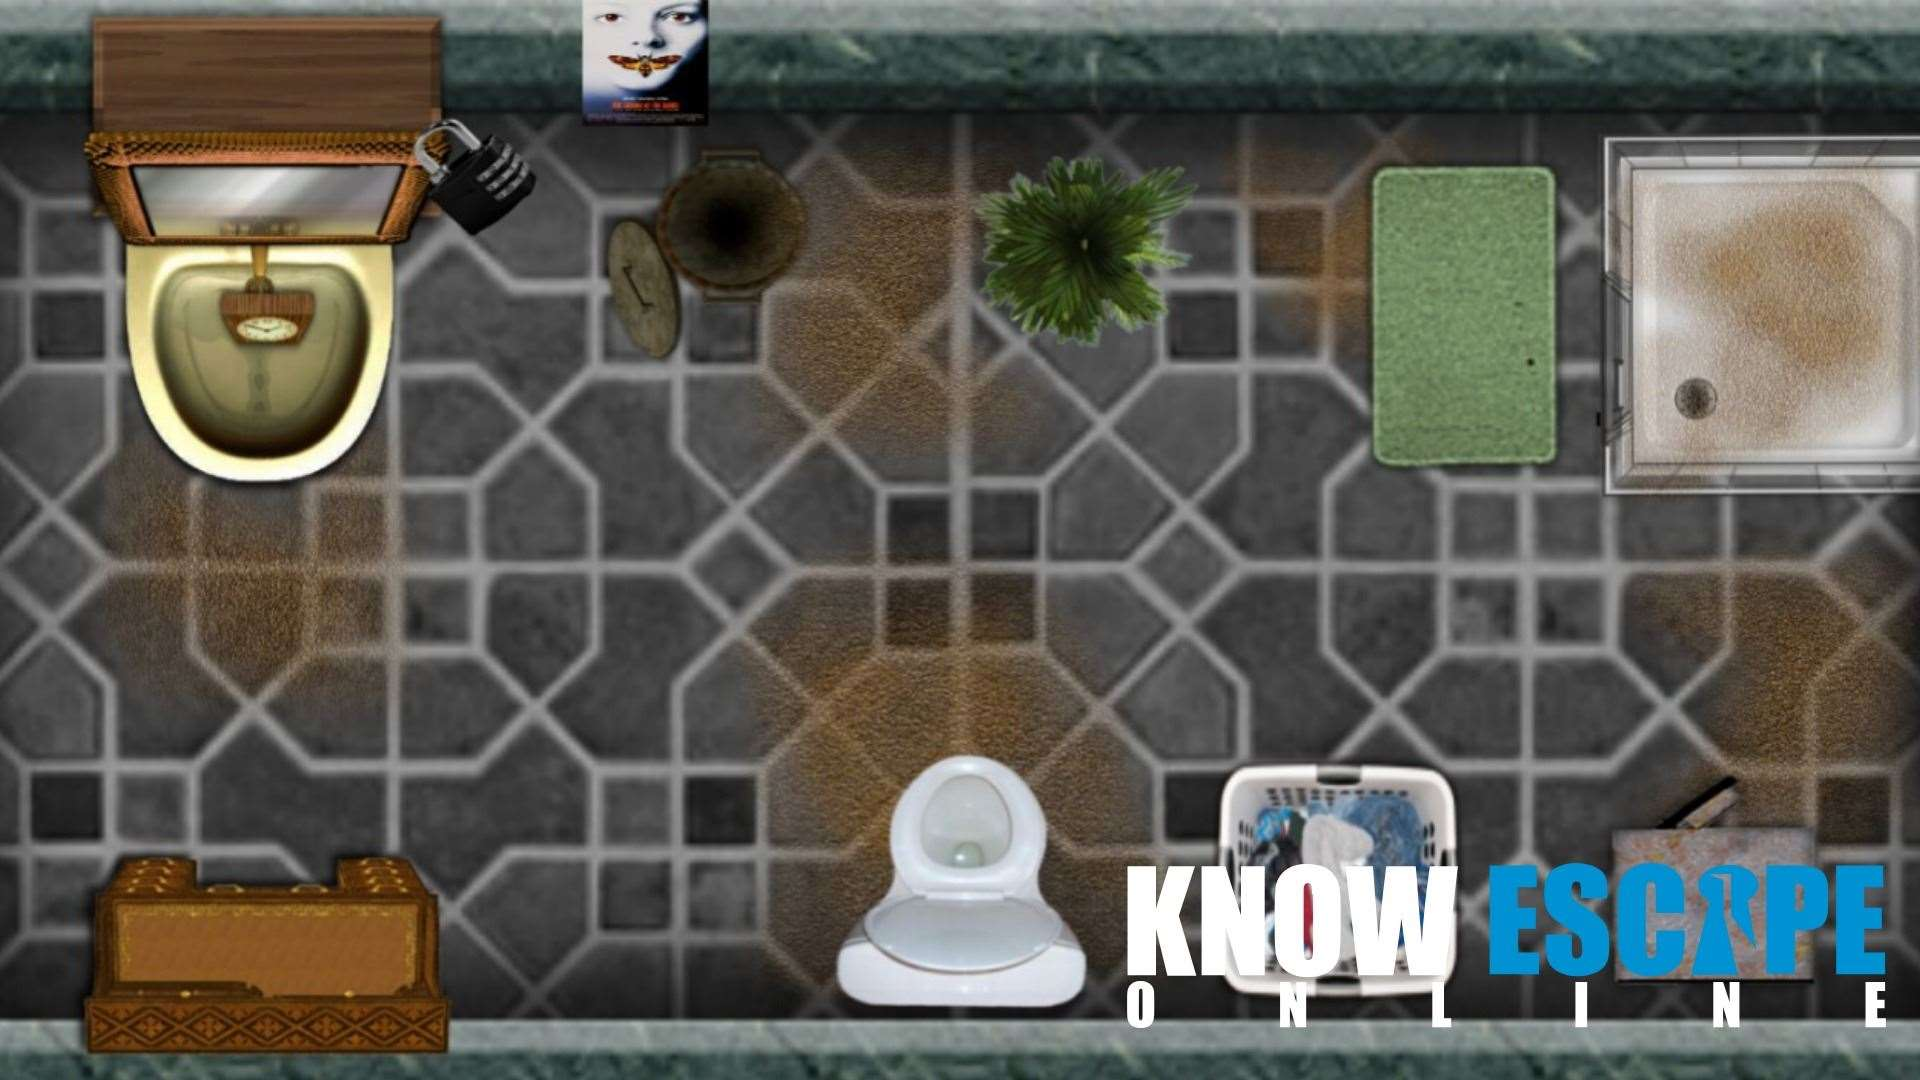 Know Escape - Alex's Bathroom (34141345)